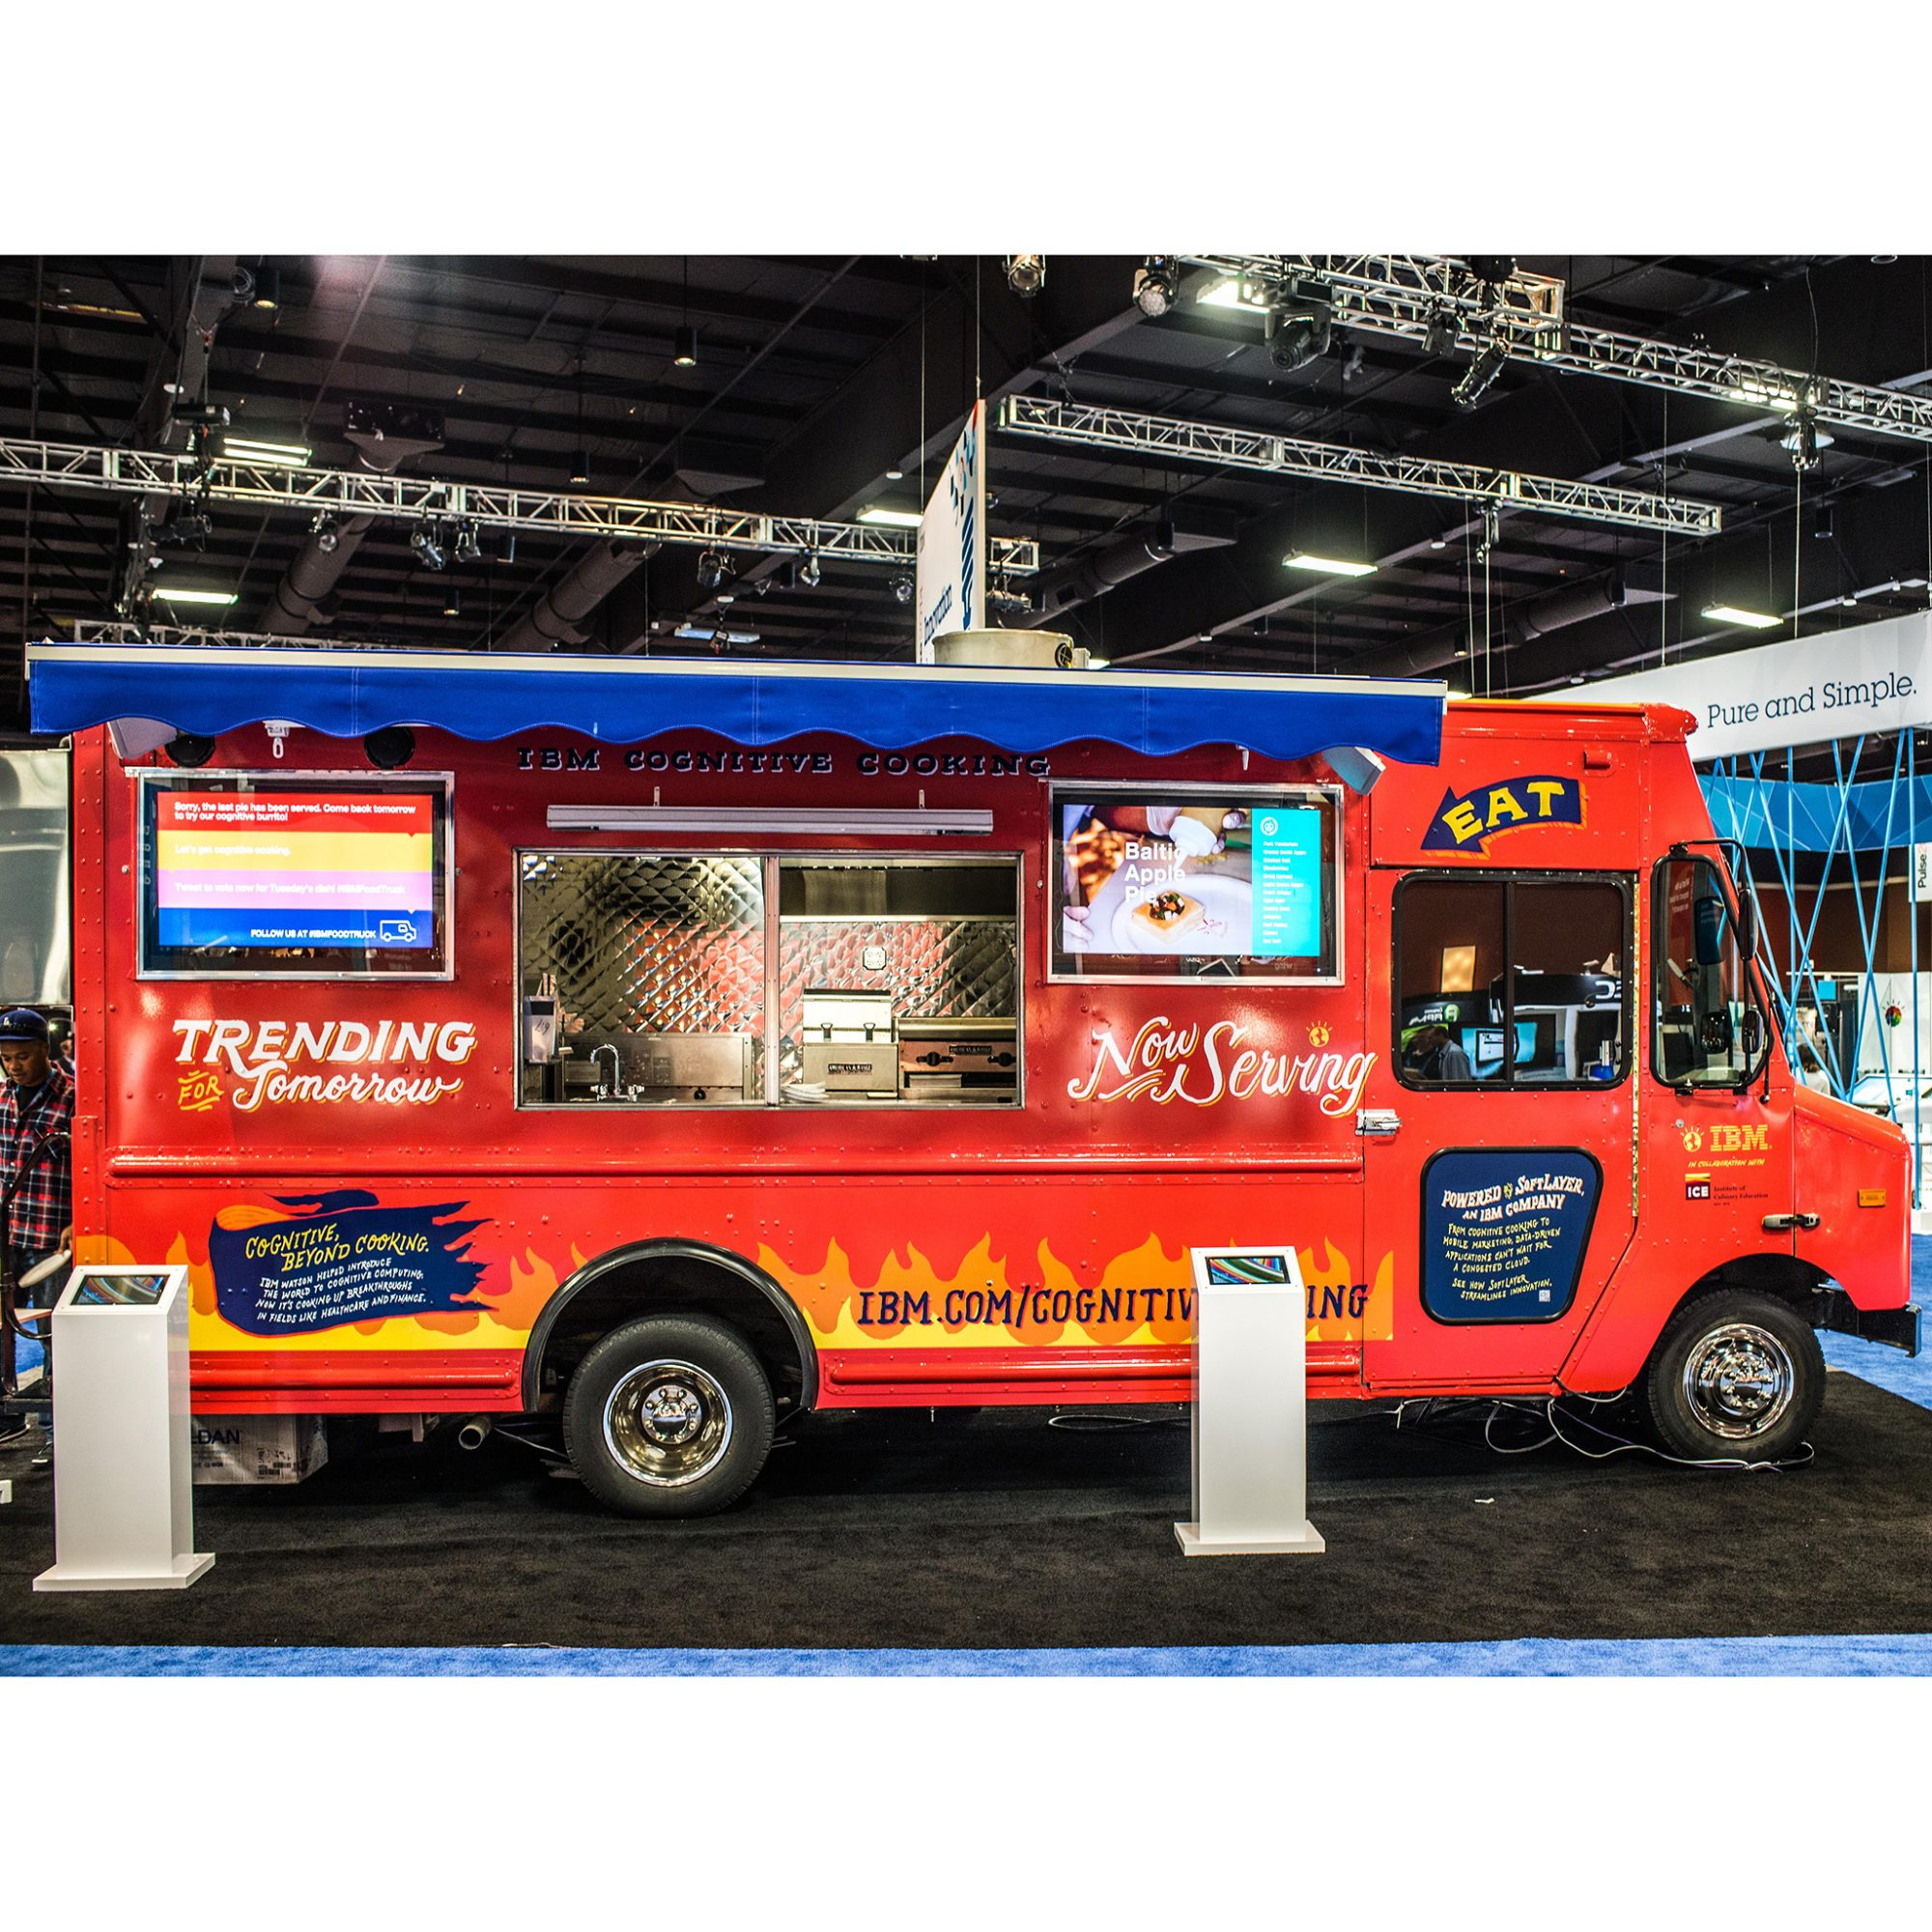 Austrian Chocolate Burritos, Belgian Bacon Pudding and More from Chef Watson at IBM's SXSW Food Truck